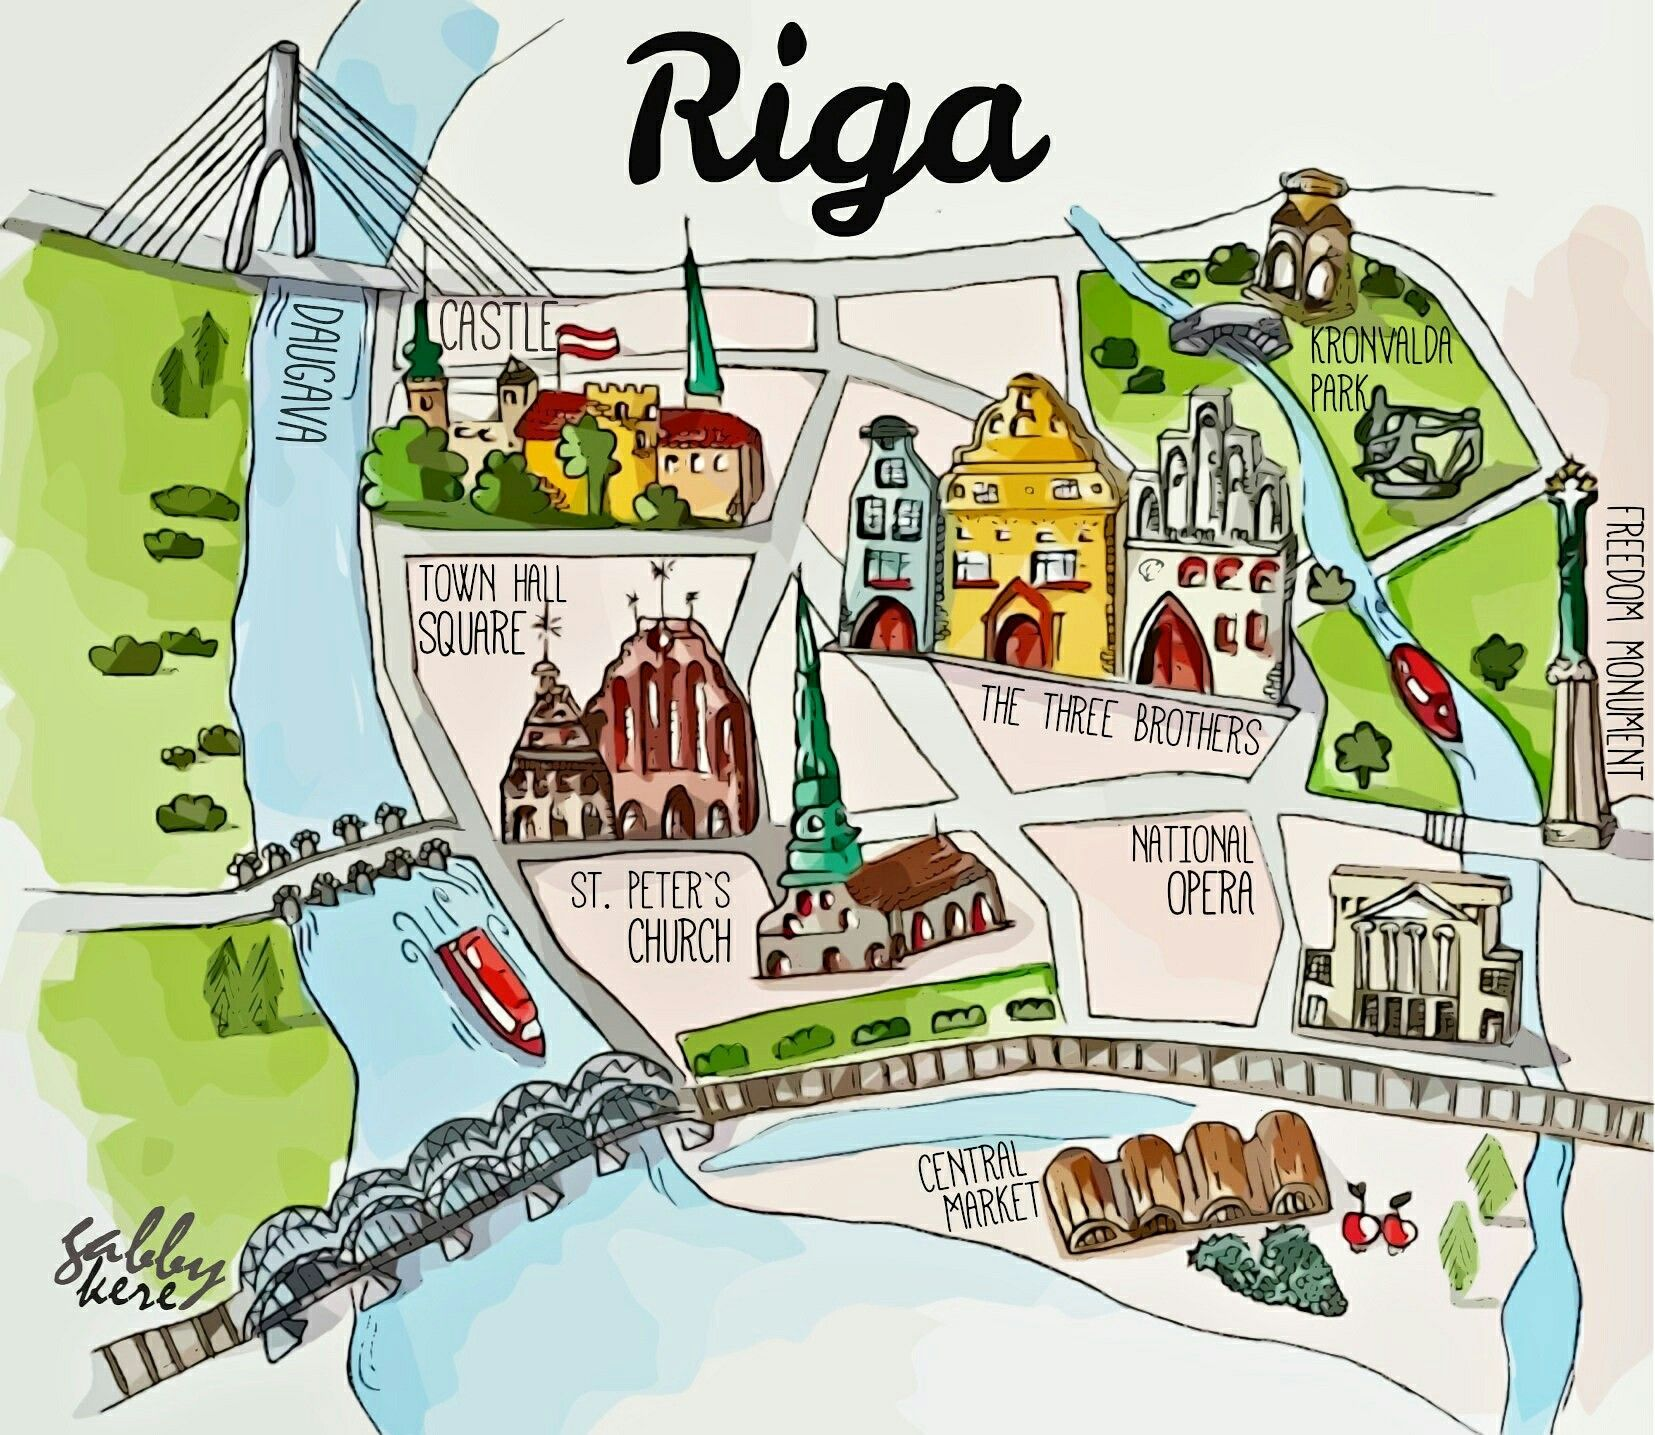 Map Of Riga Old Town Watercolour иллюстрации Pinterest - Old riga map